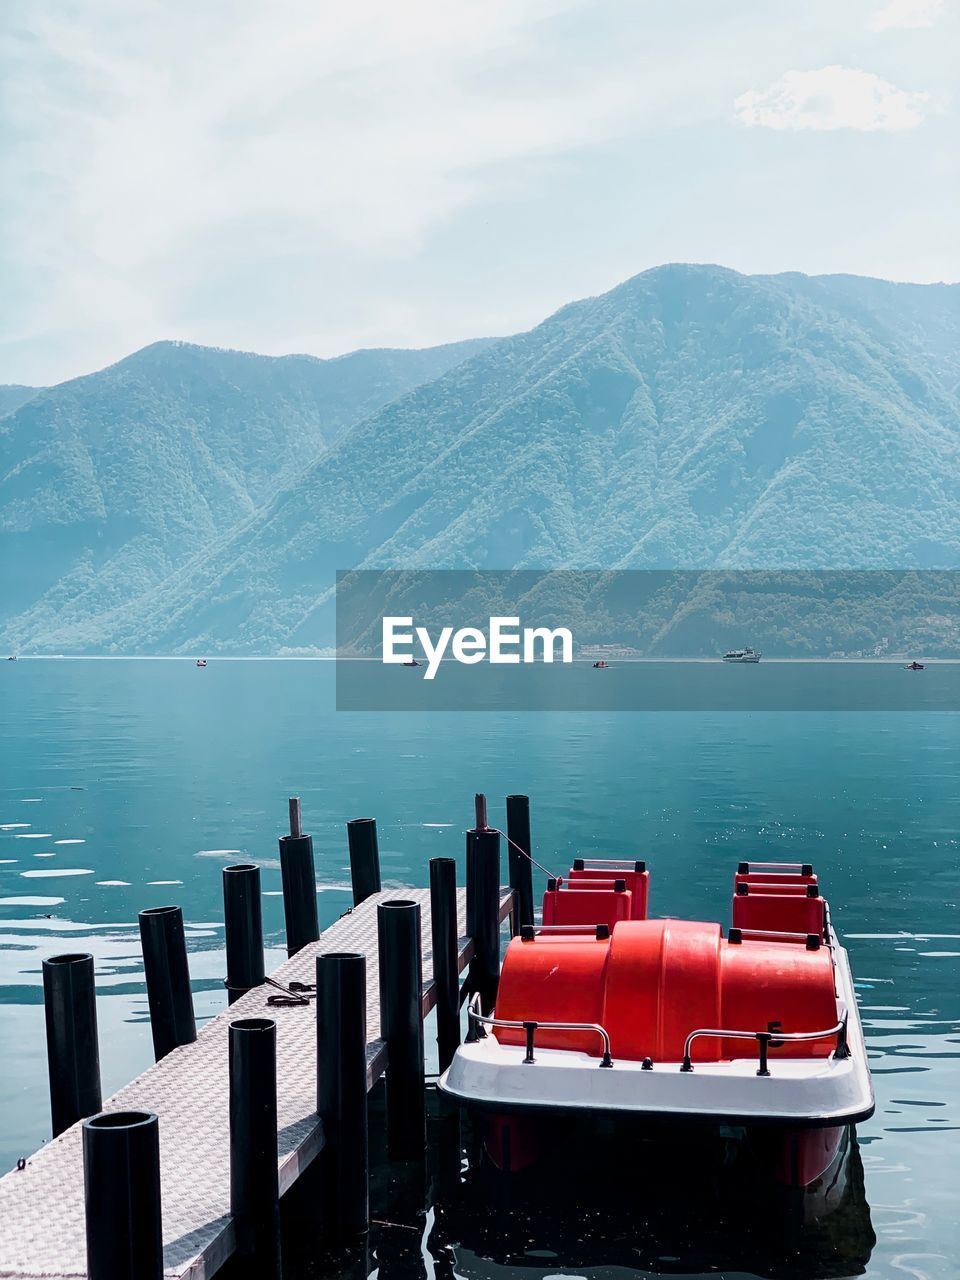 mountain, water, beauty in nature, scenics - nature, sky, nautical vessel, day, mountain range, nature, tranquil scene, red, no people, tranquility, transportation, non-urban scene, lake, idyllic, mode of transportation, outdoors, inflatable, snowcapped mountain